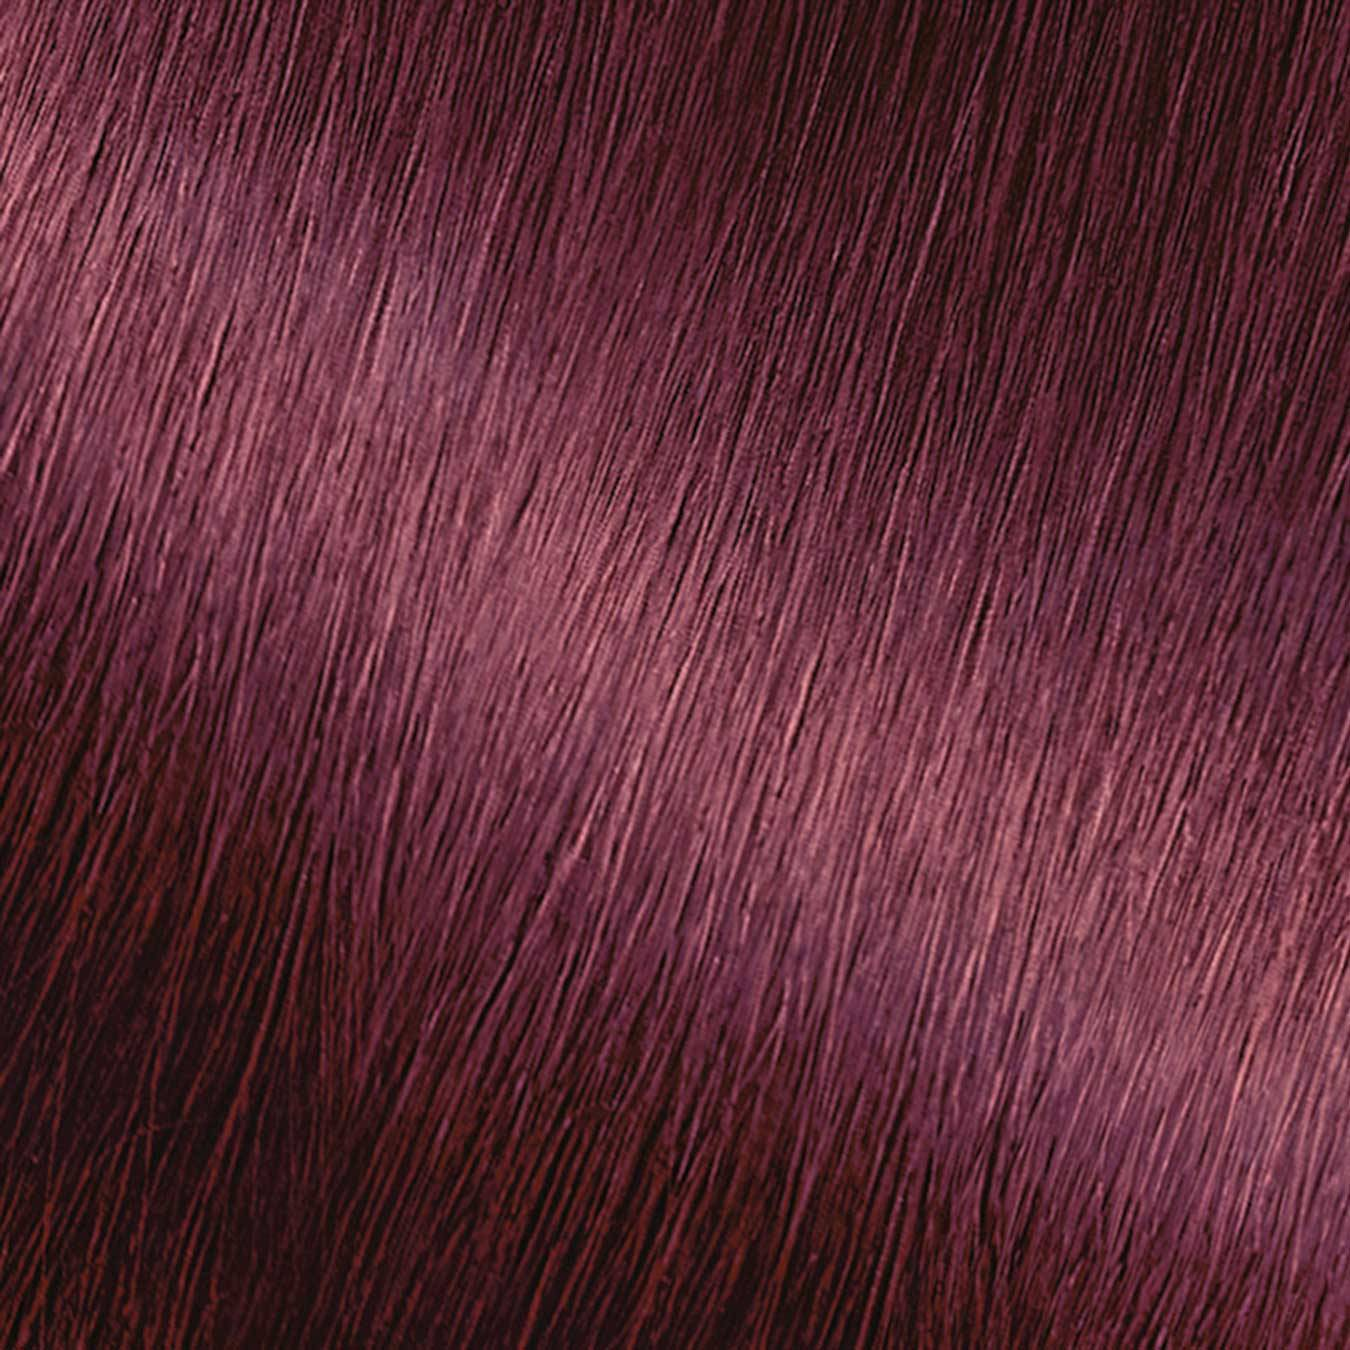 Hair Swatch of Nutrisse Ultra Color M2 Sweet Grenadine.